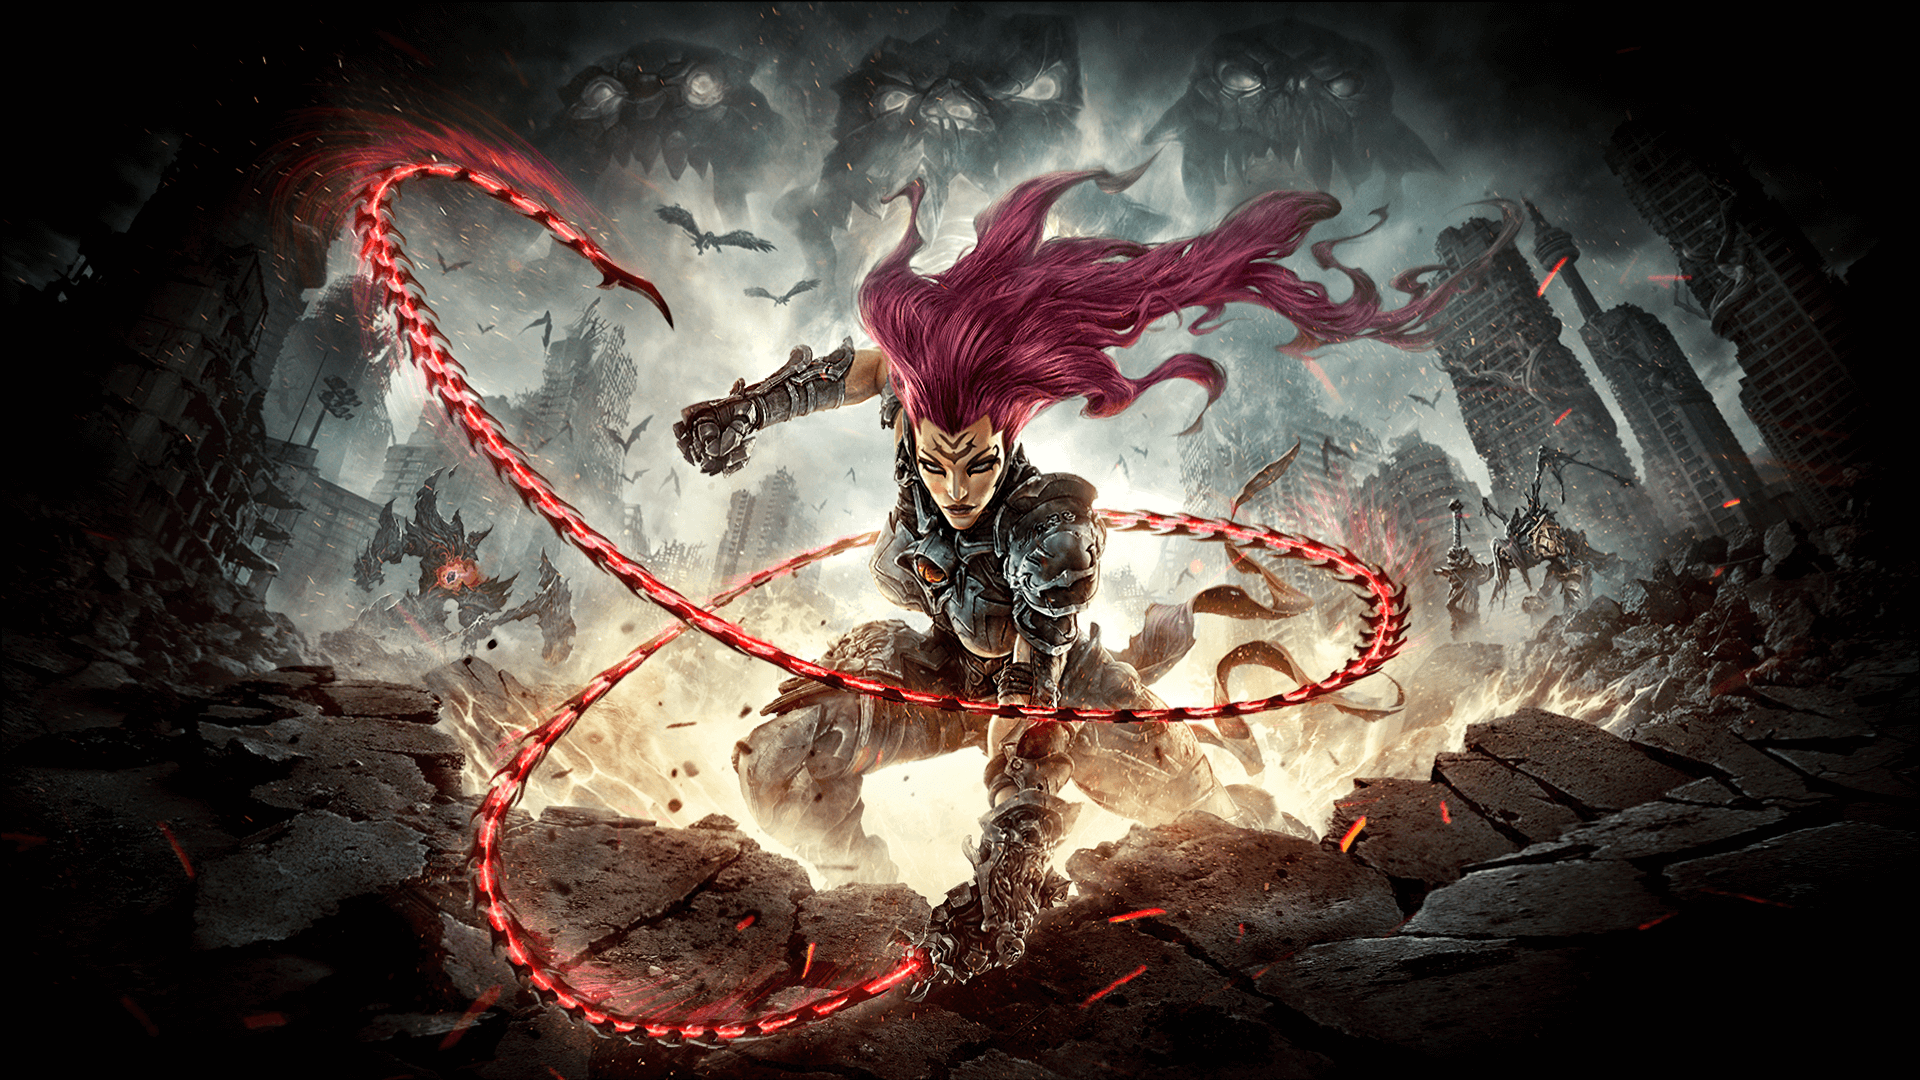 Finally, Darksiders 3 Announced and Coming in 2018 for PS4, Xbox One and PC!